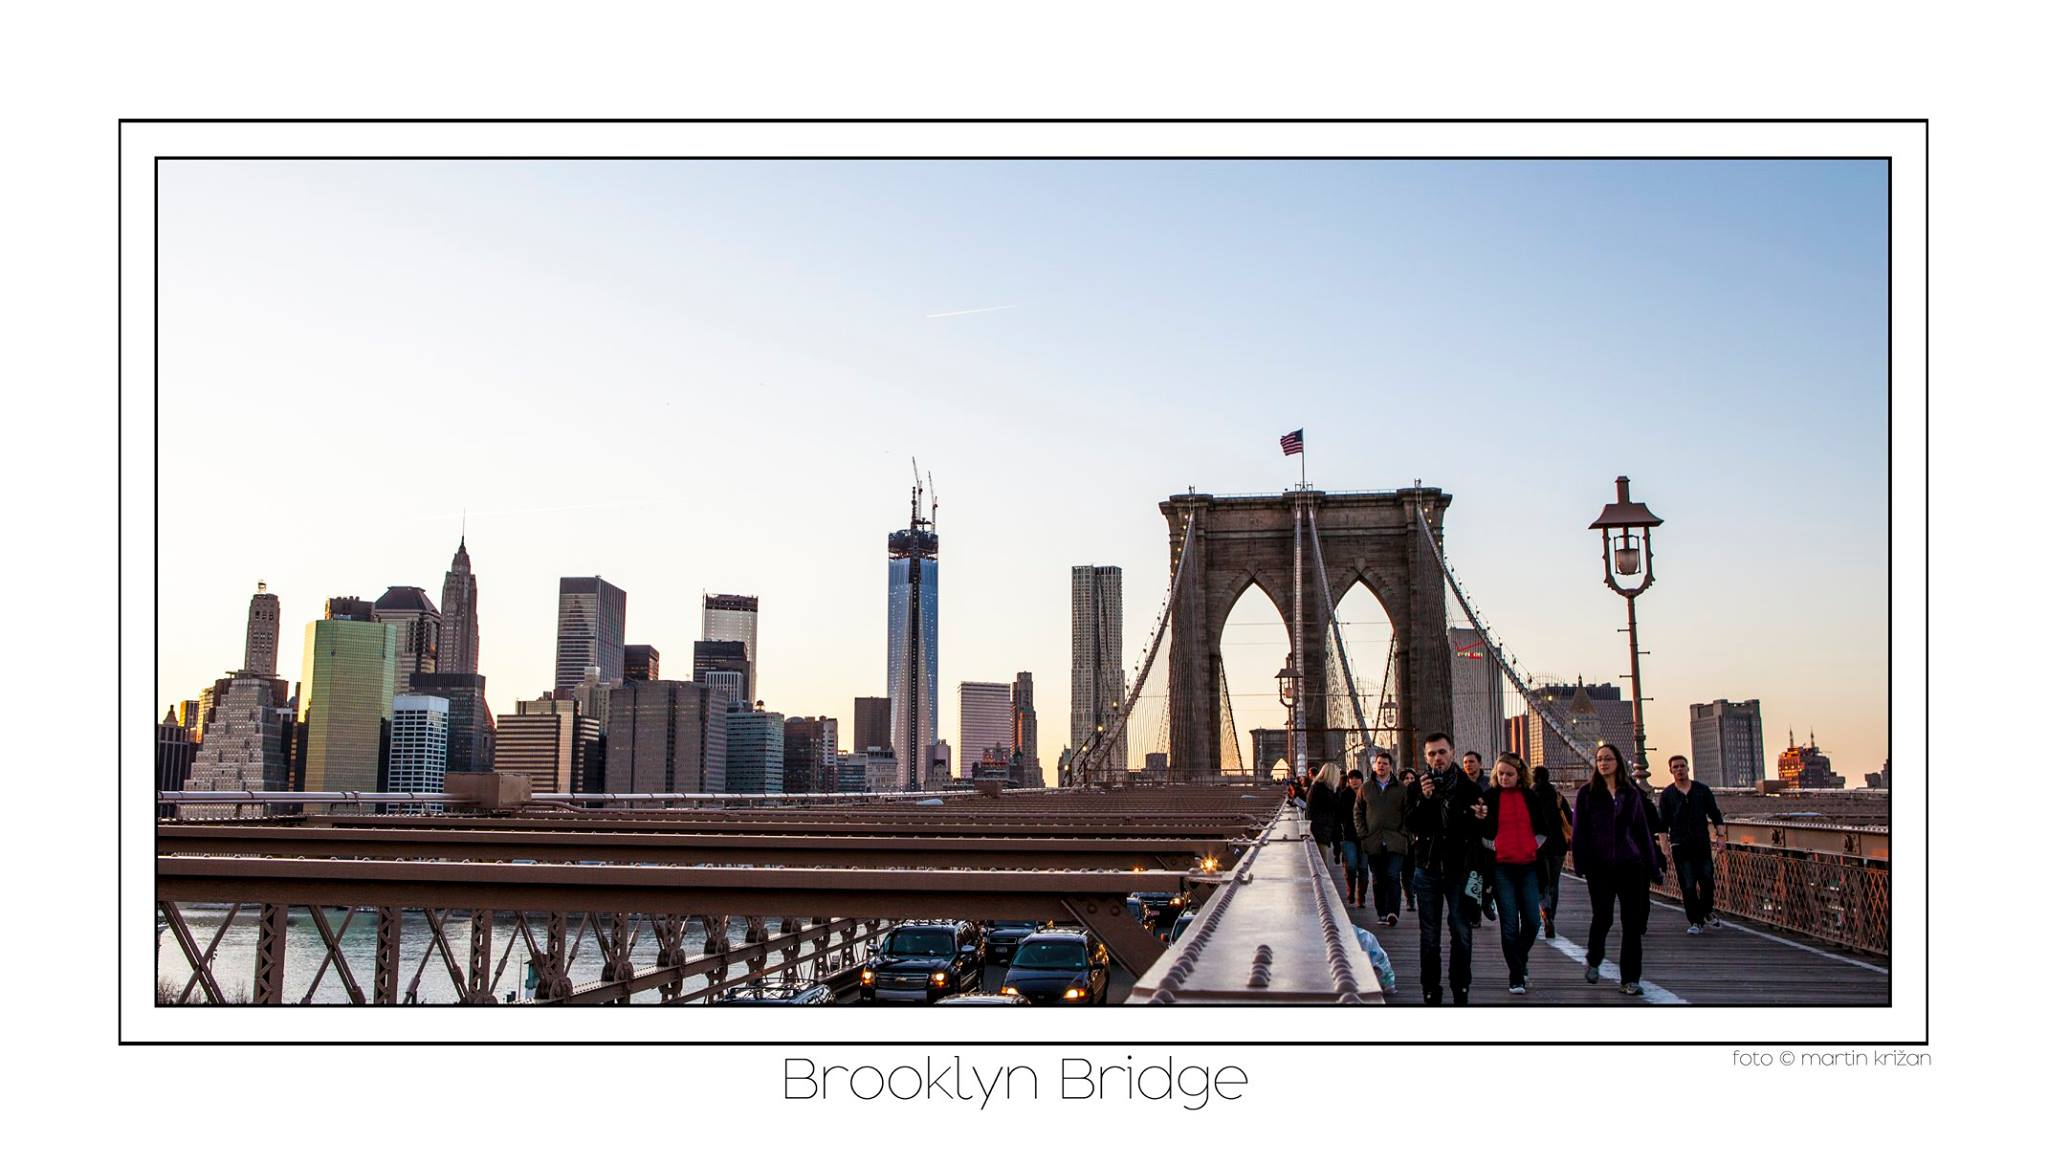 The Brooklyn Bridge & :amhattan